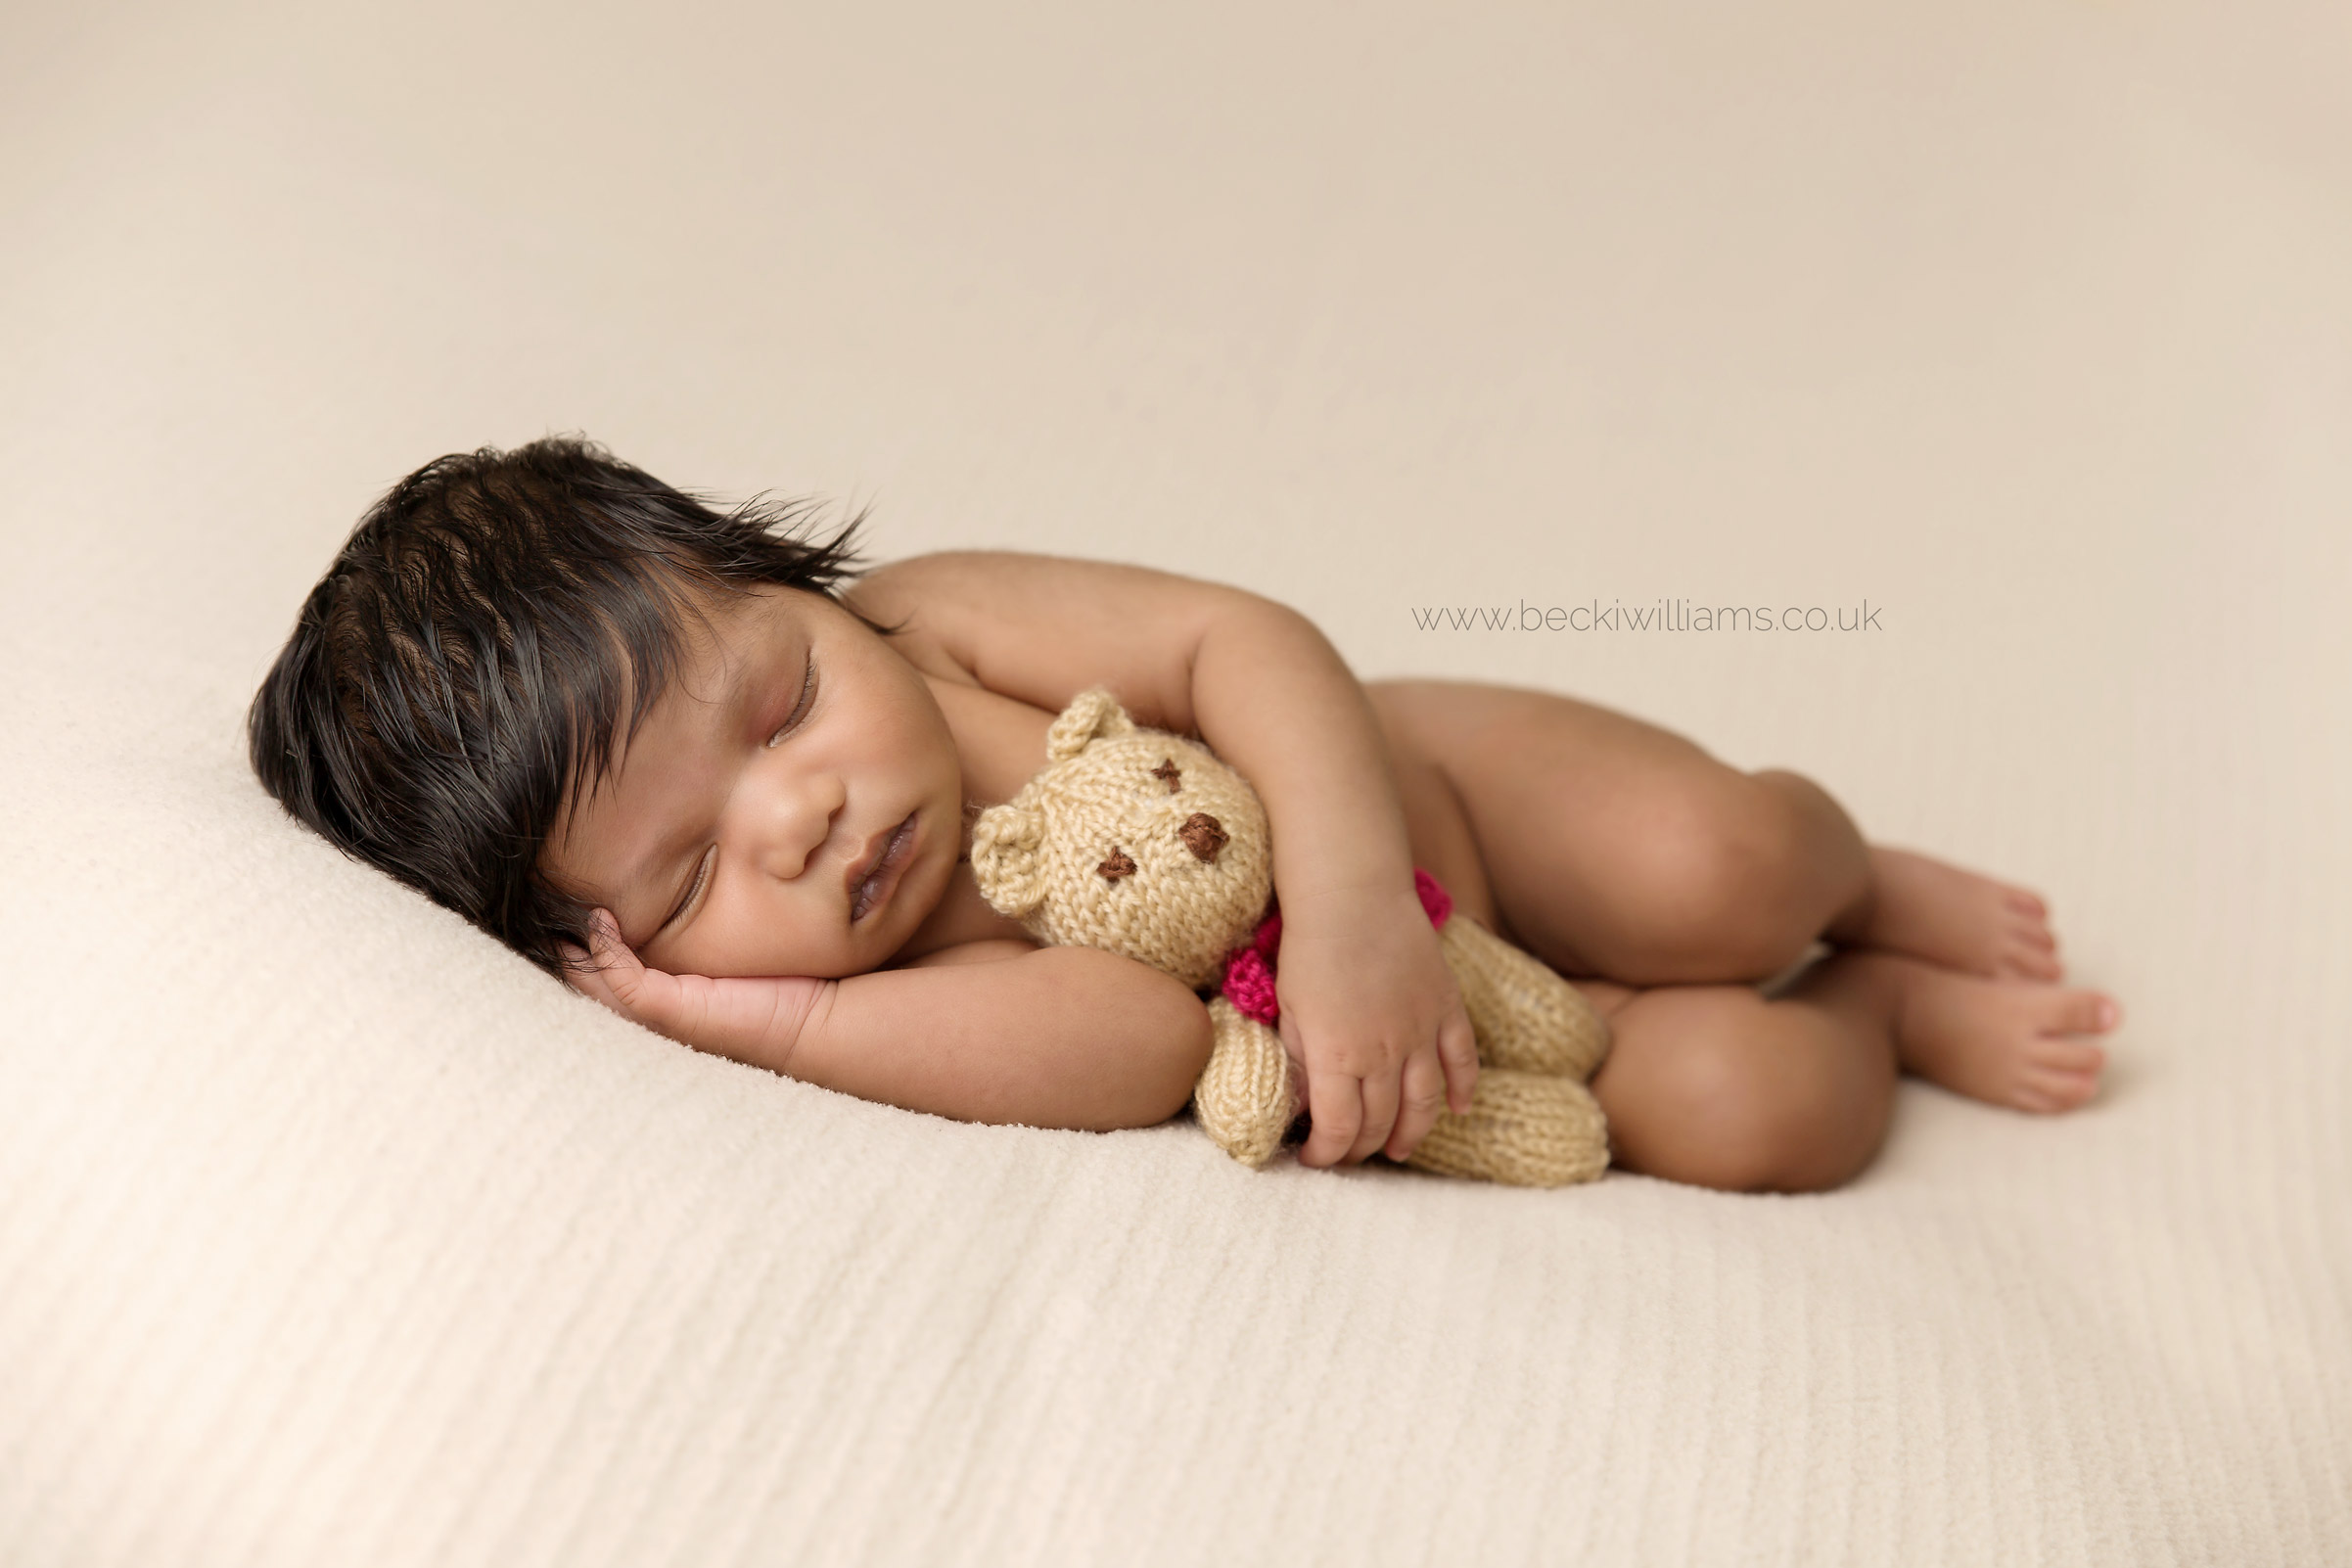 newborn baby girl laying on her side cuddling a toy bear for her newborn baby photo shoot in hemel hempstead